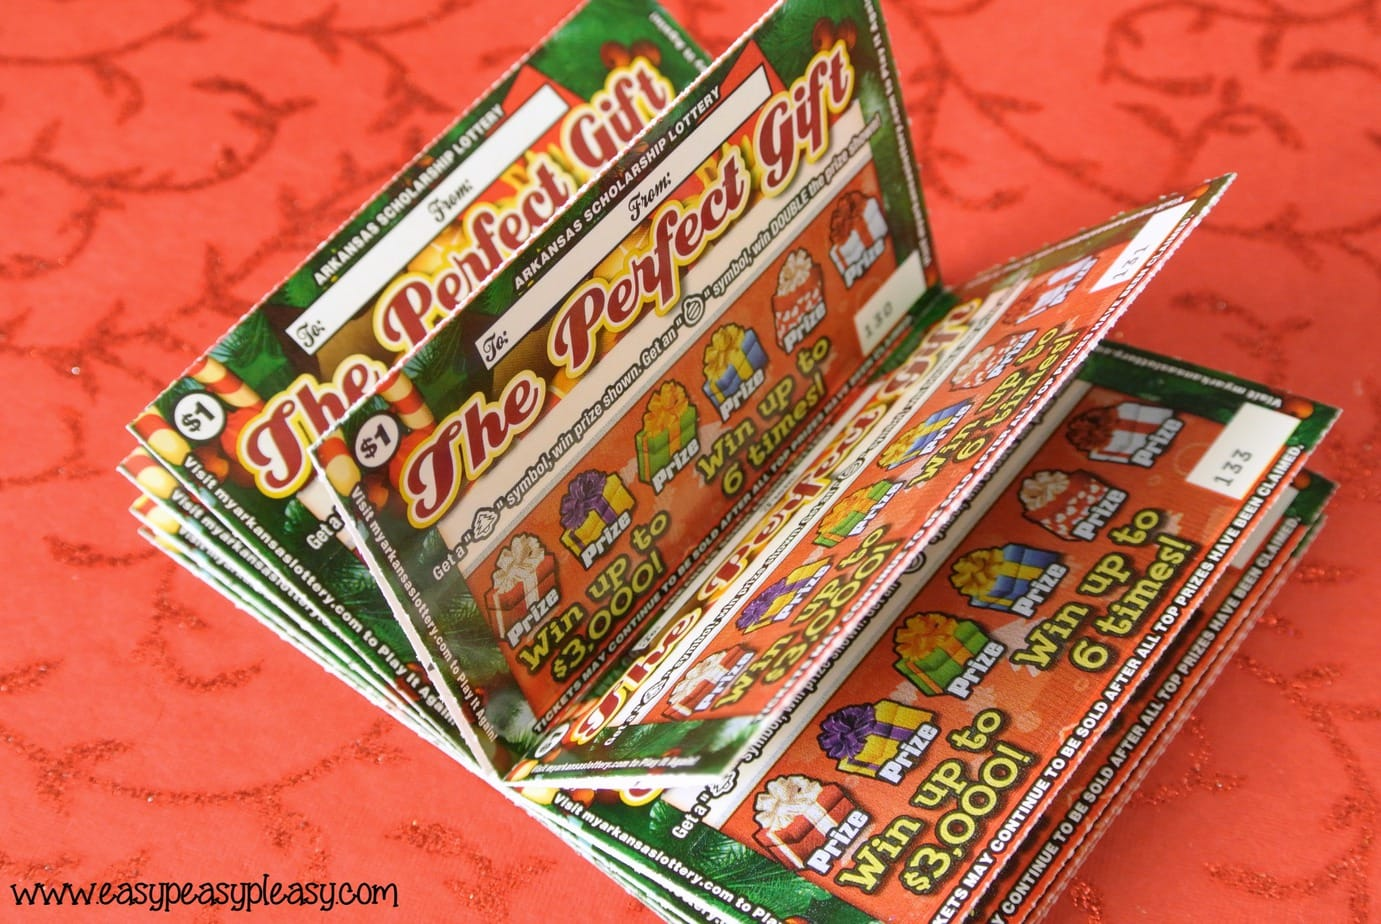 Arkansas Scholarship Lottery Tickets make the perfect gift to add to scavenger hunt clues. Check out my free printable clues.